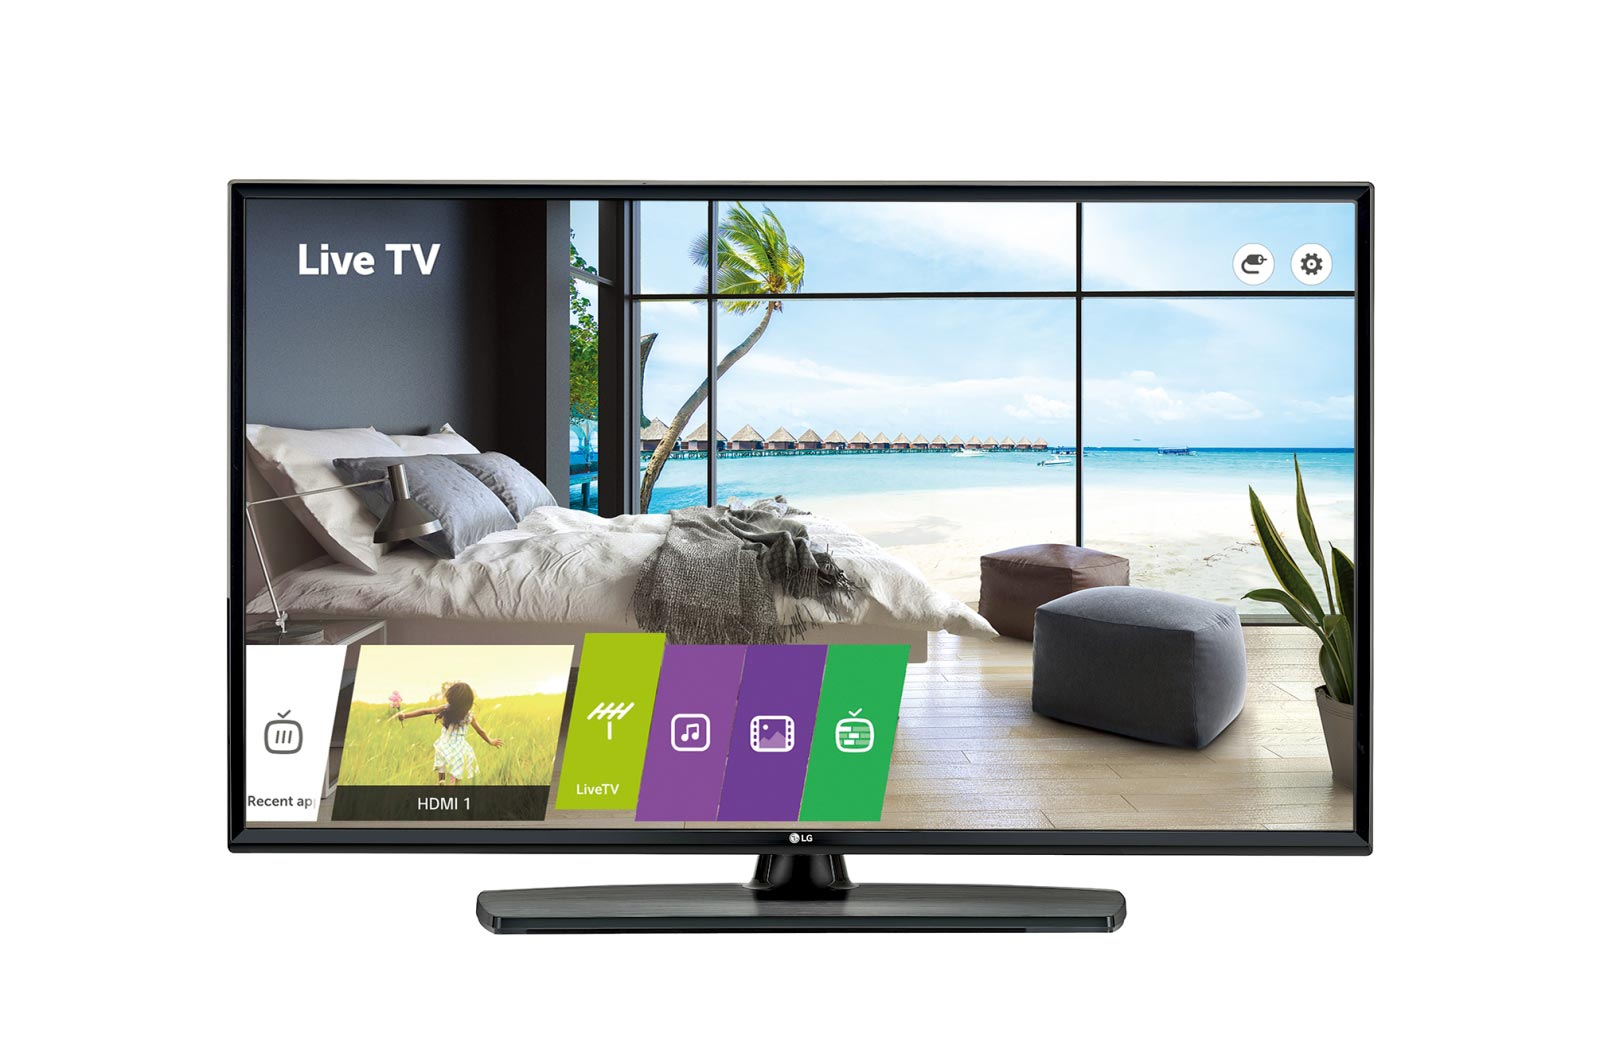 LG, COMMERCIAL, HOTEL, (UU665H), 43, UHD, TV, 3840x2160, HDMI, LAN, SPKR, PRO:CENTRIC, S/W, 3YR,